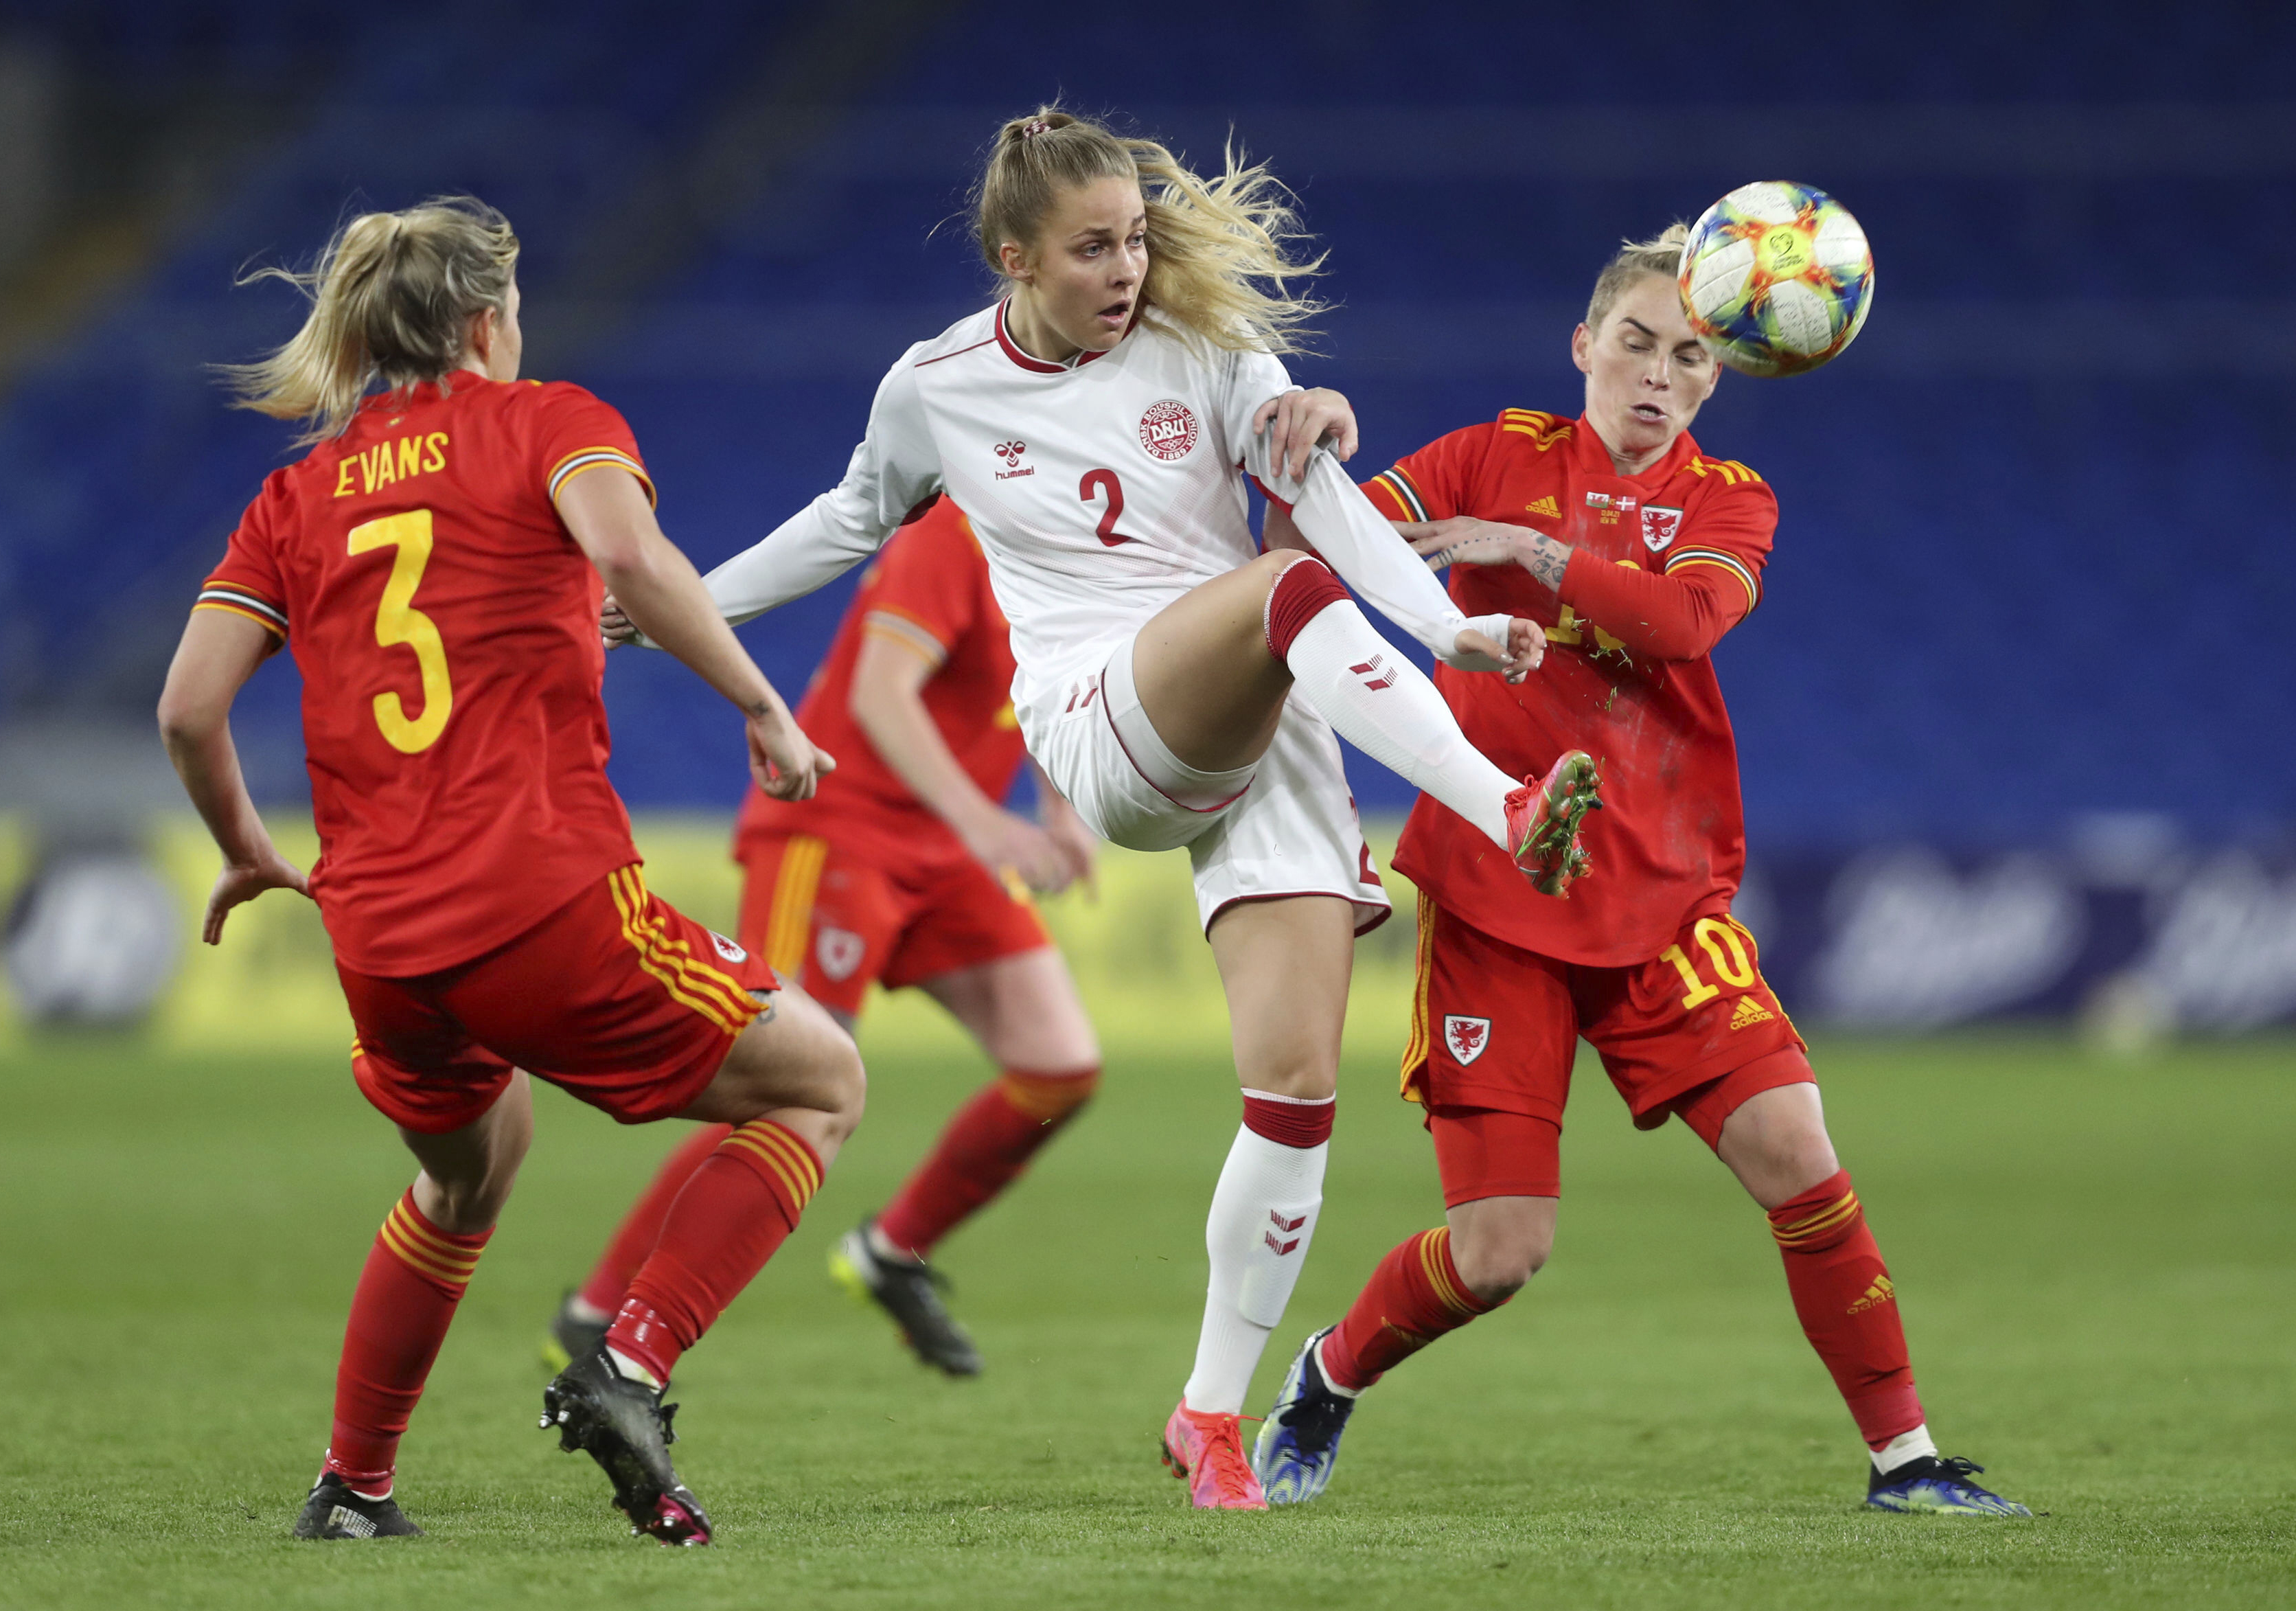 <p>Denmark's Olivia Holt, centre, and Wales' Jess Fishlock, right, during their women's international friendly soccer match at Cardiff City Stadium, Cardiff, Wales, Tuesday April 13, 2021. (David Davies/PA via AP)</p>